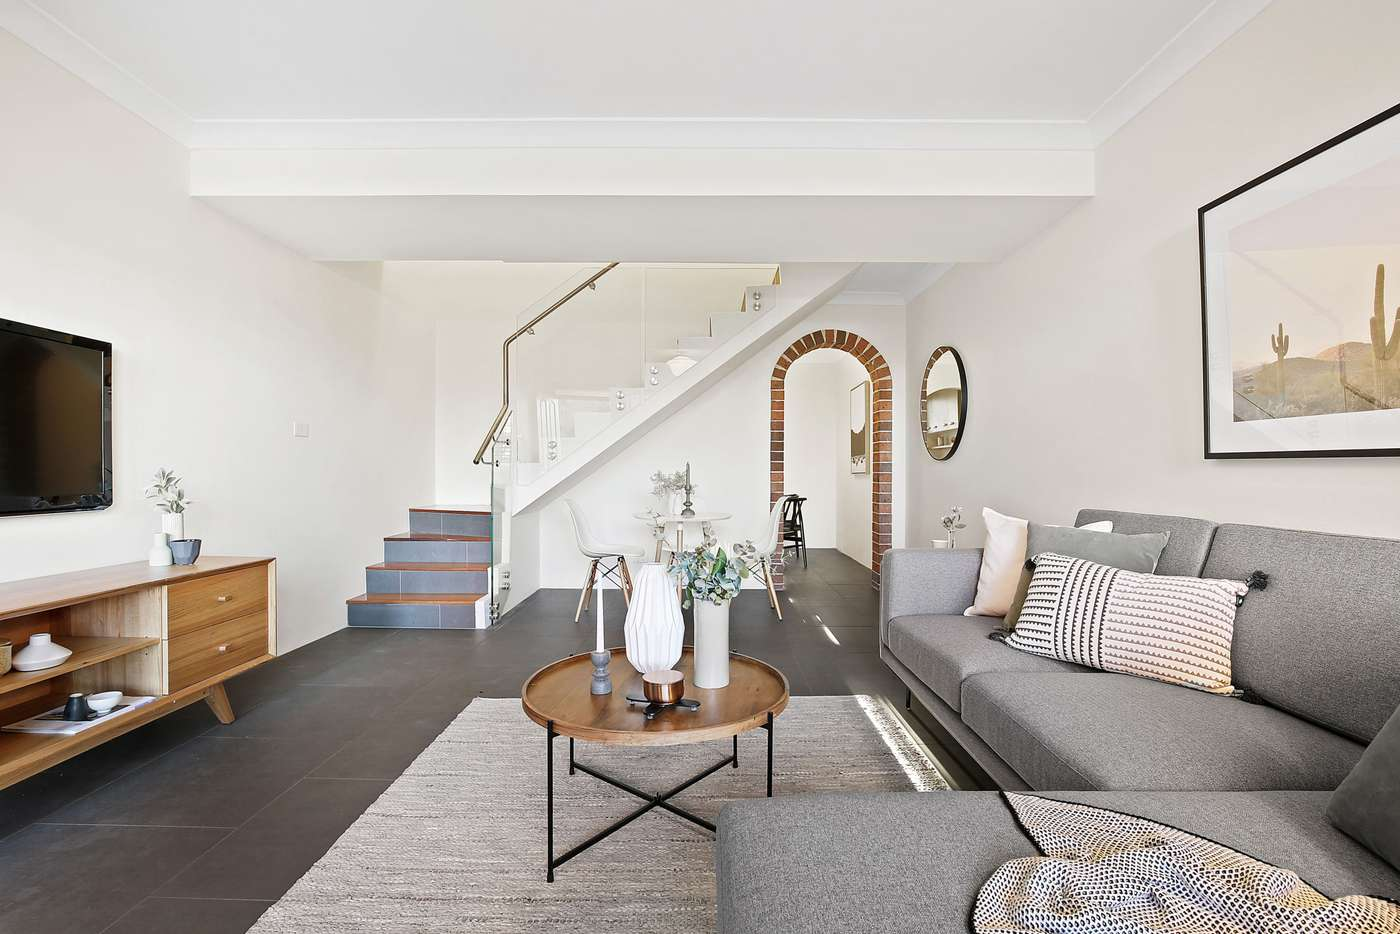 Main view of Homely townhouse listing, 2/1 Iredale Street, Newtown NSW 2042